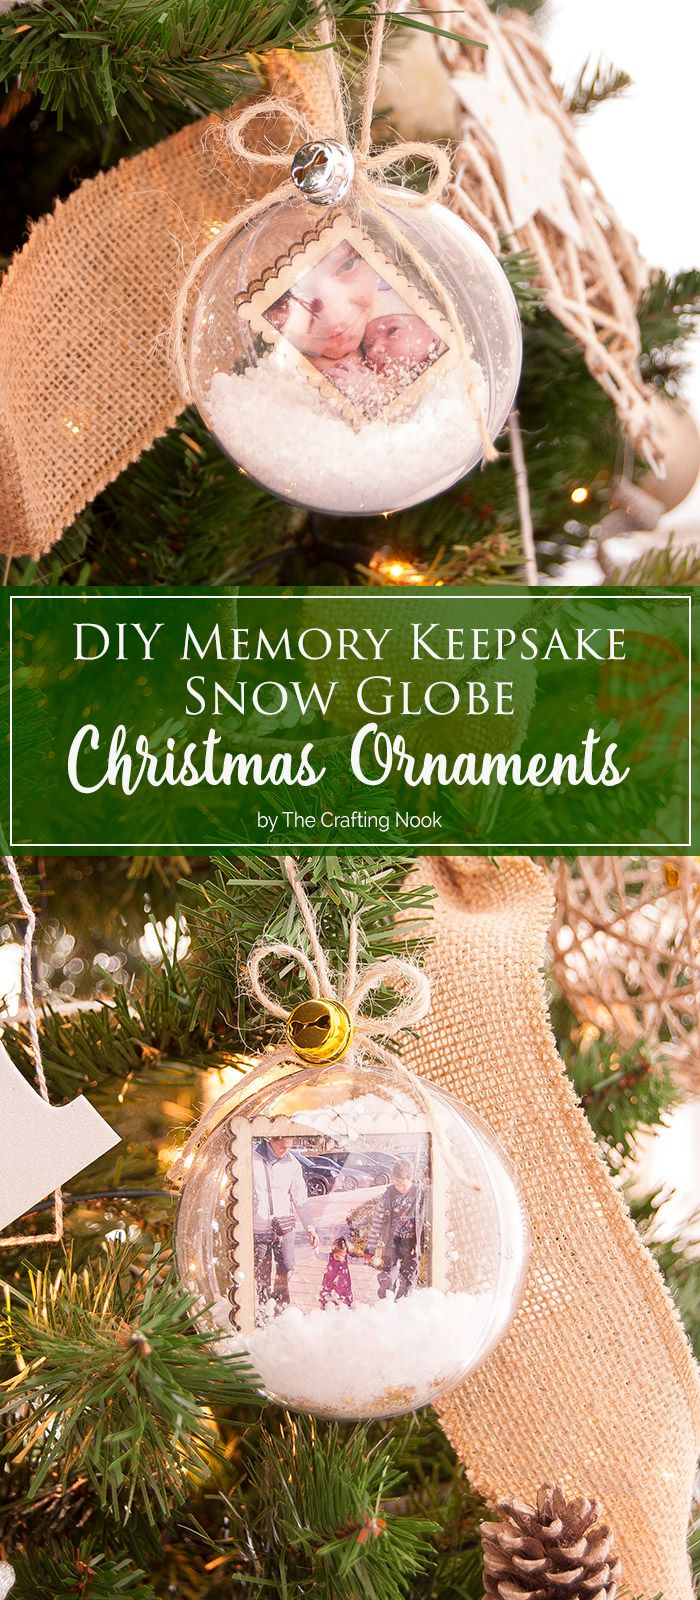 Are you looking for an idea to add meaningful and precious loving moments to your Christmas tree? These DIY Memory Keepsake Snow Globe Christmas Ornaments will do just that. All the love from the happiest moments of our lives right here in our tree!